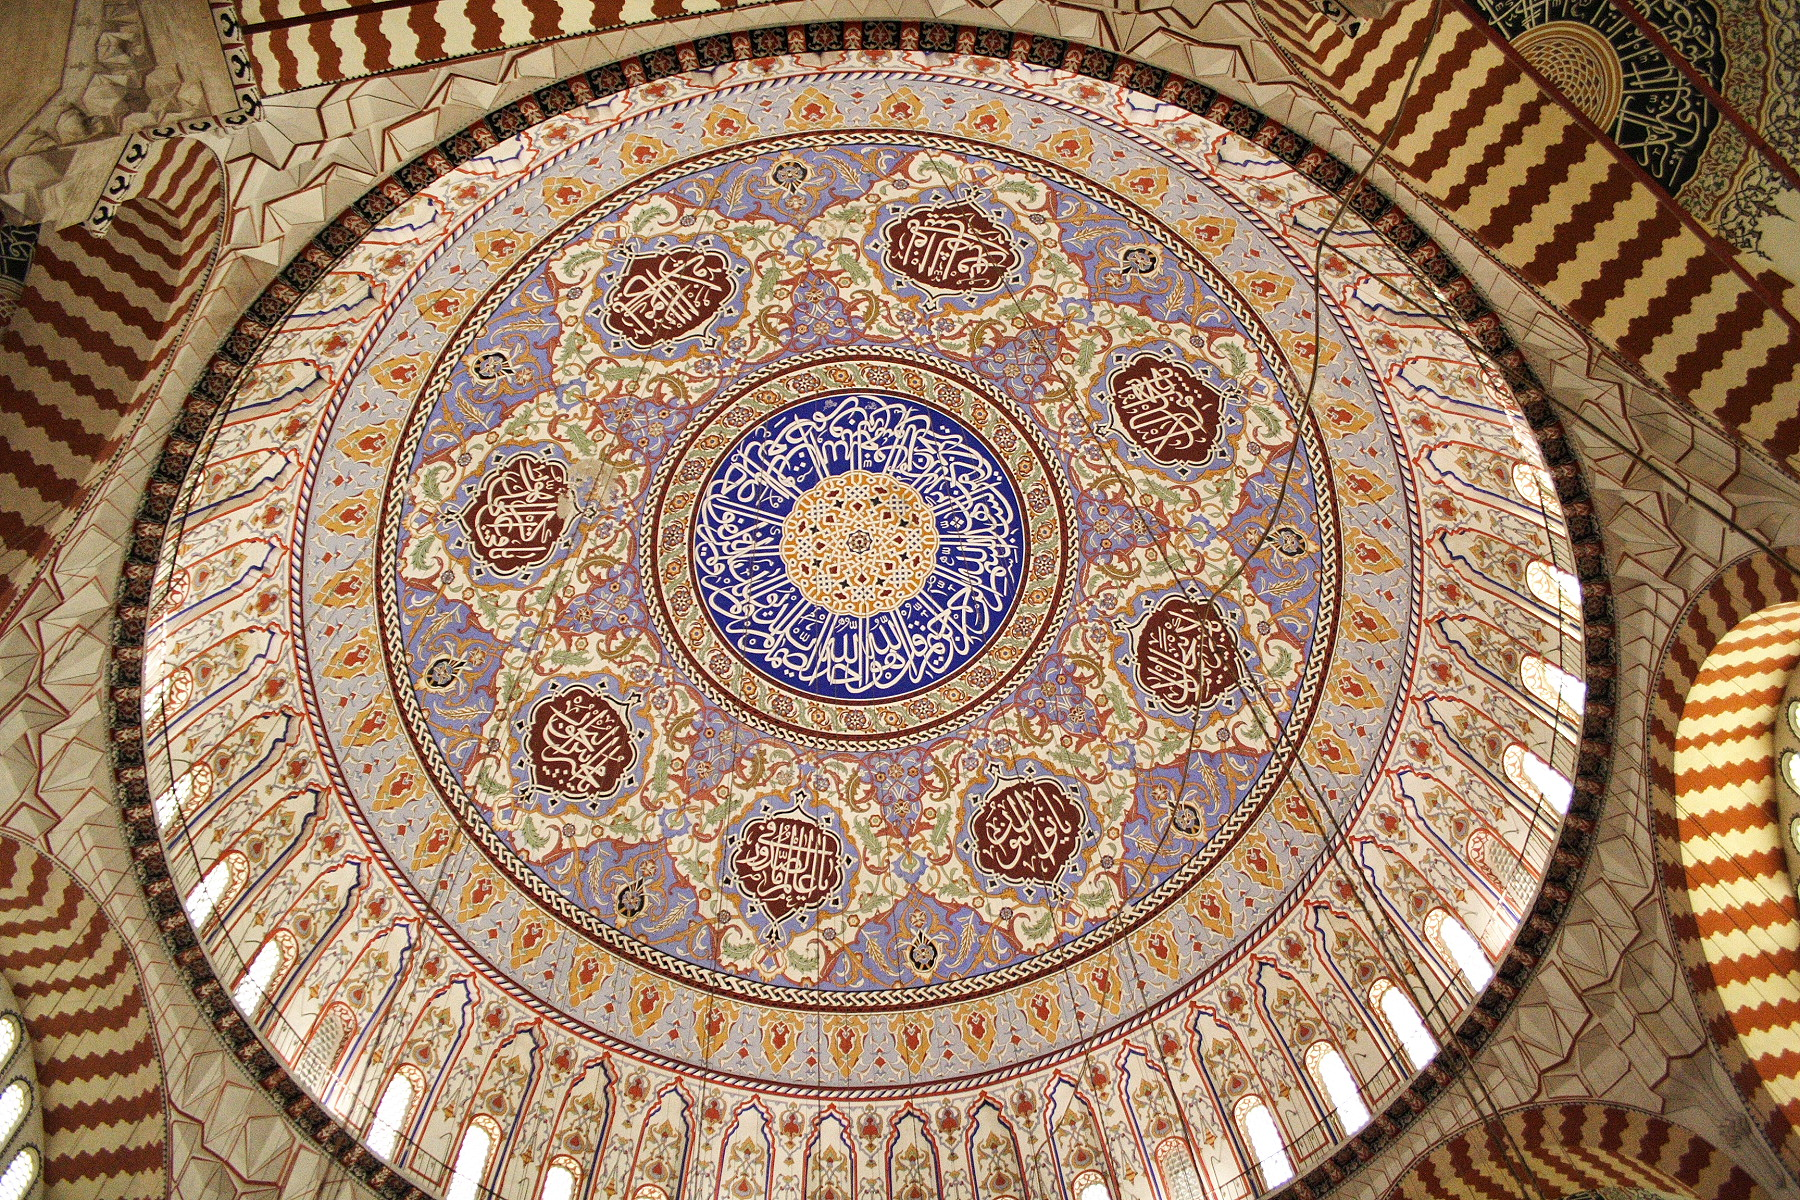 Ceiling Medallion Arts And Crafts